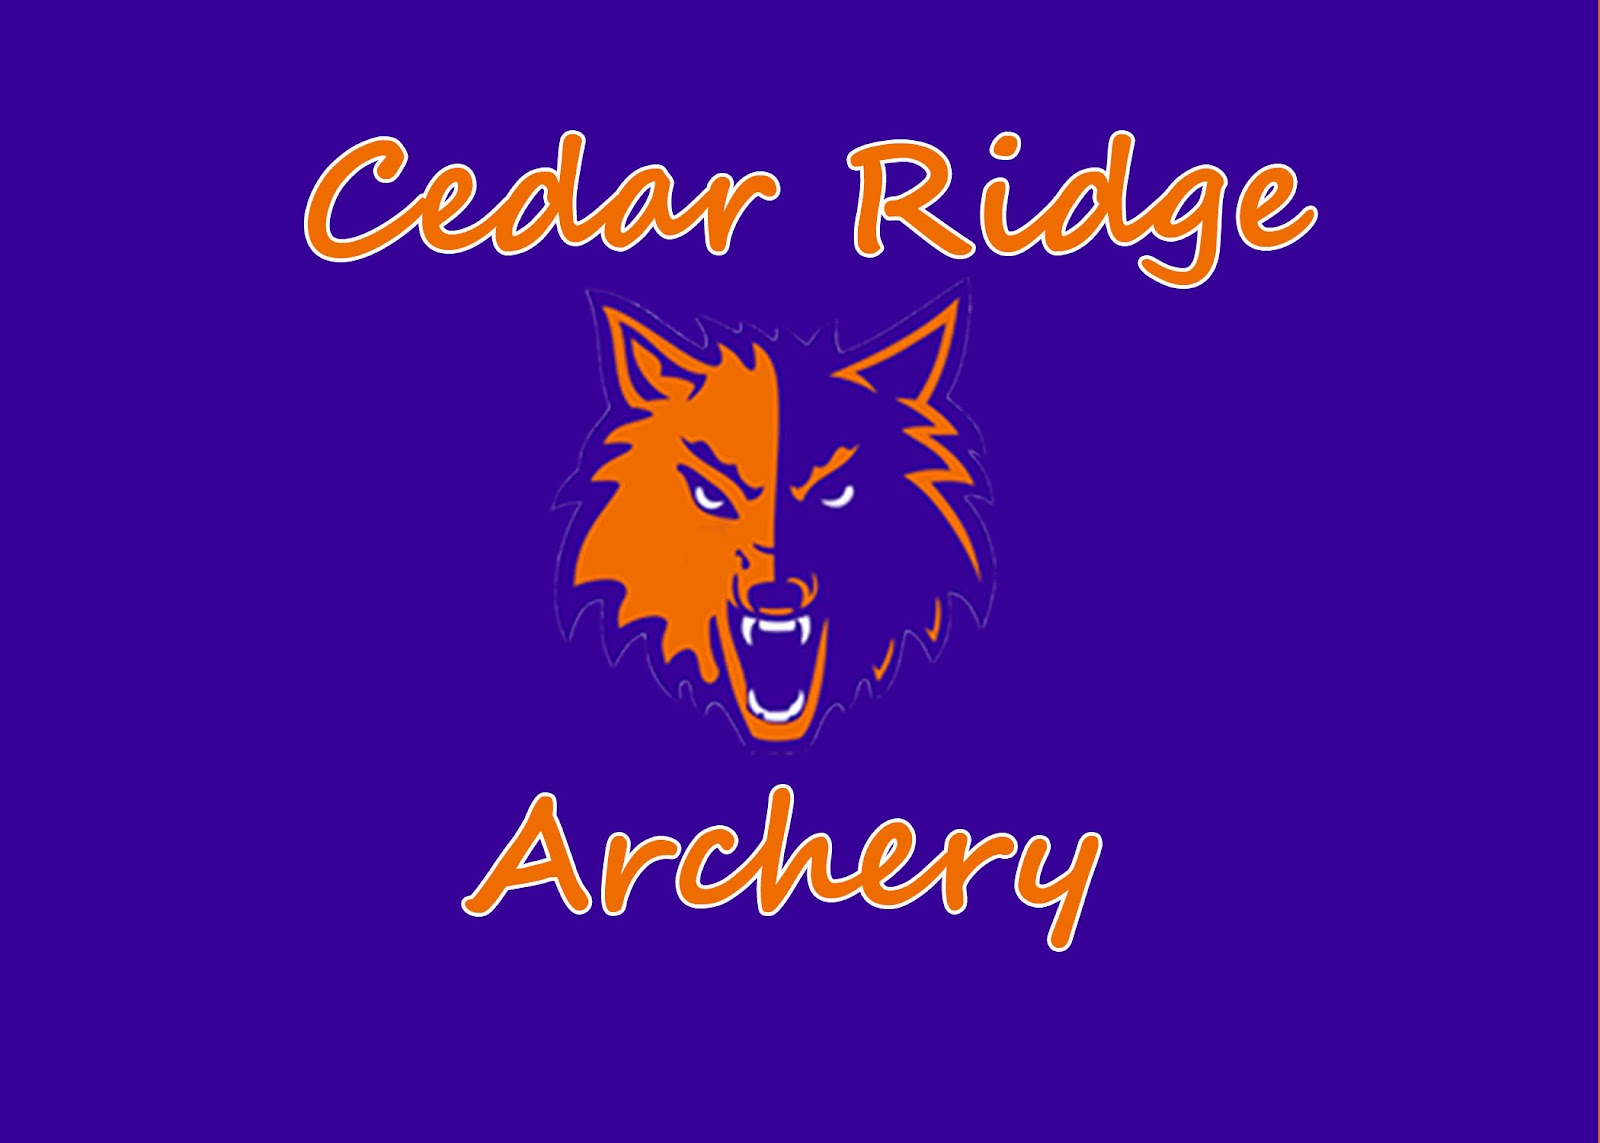 front of archery shirt.jpg